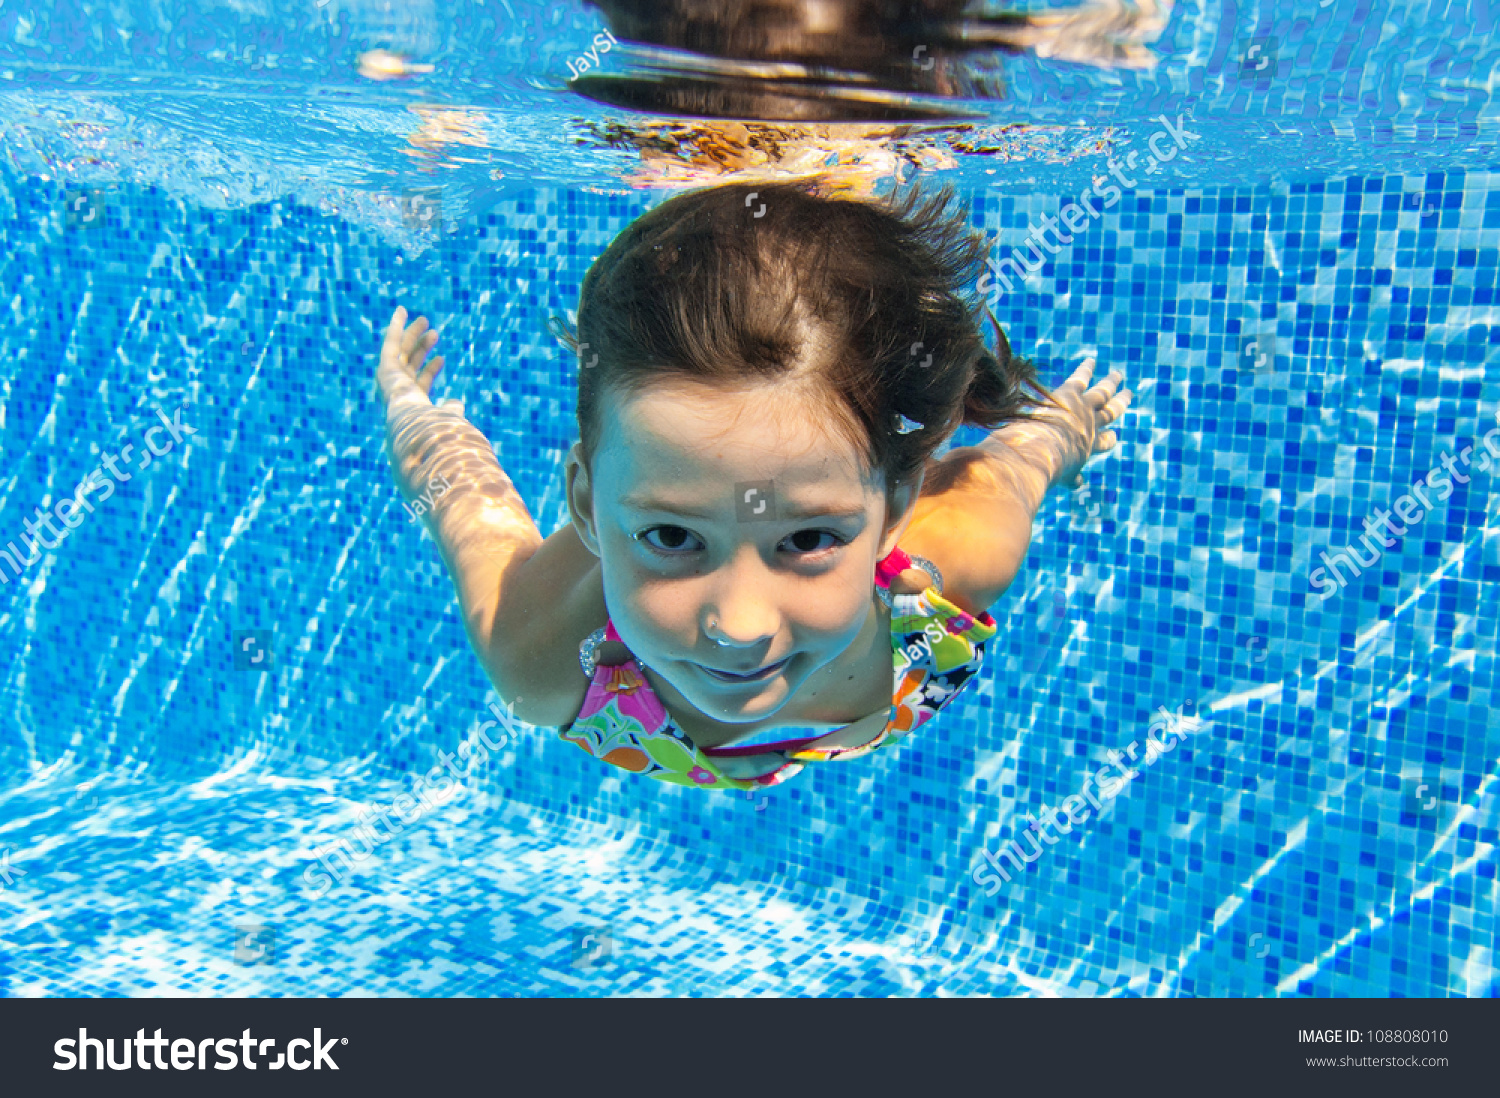 Sherpa Baarn Zwembad Happy Smiling Underwater Child In Swimming Pool Beautiful